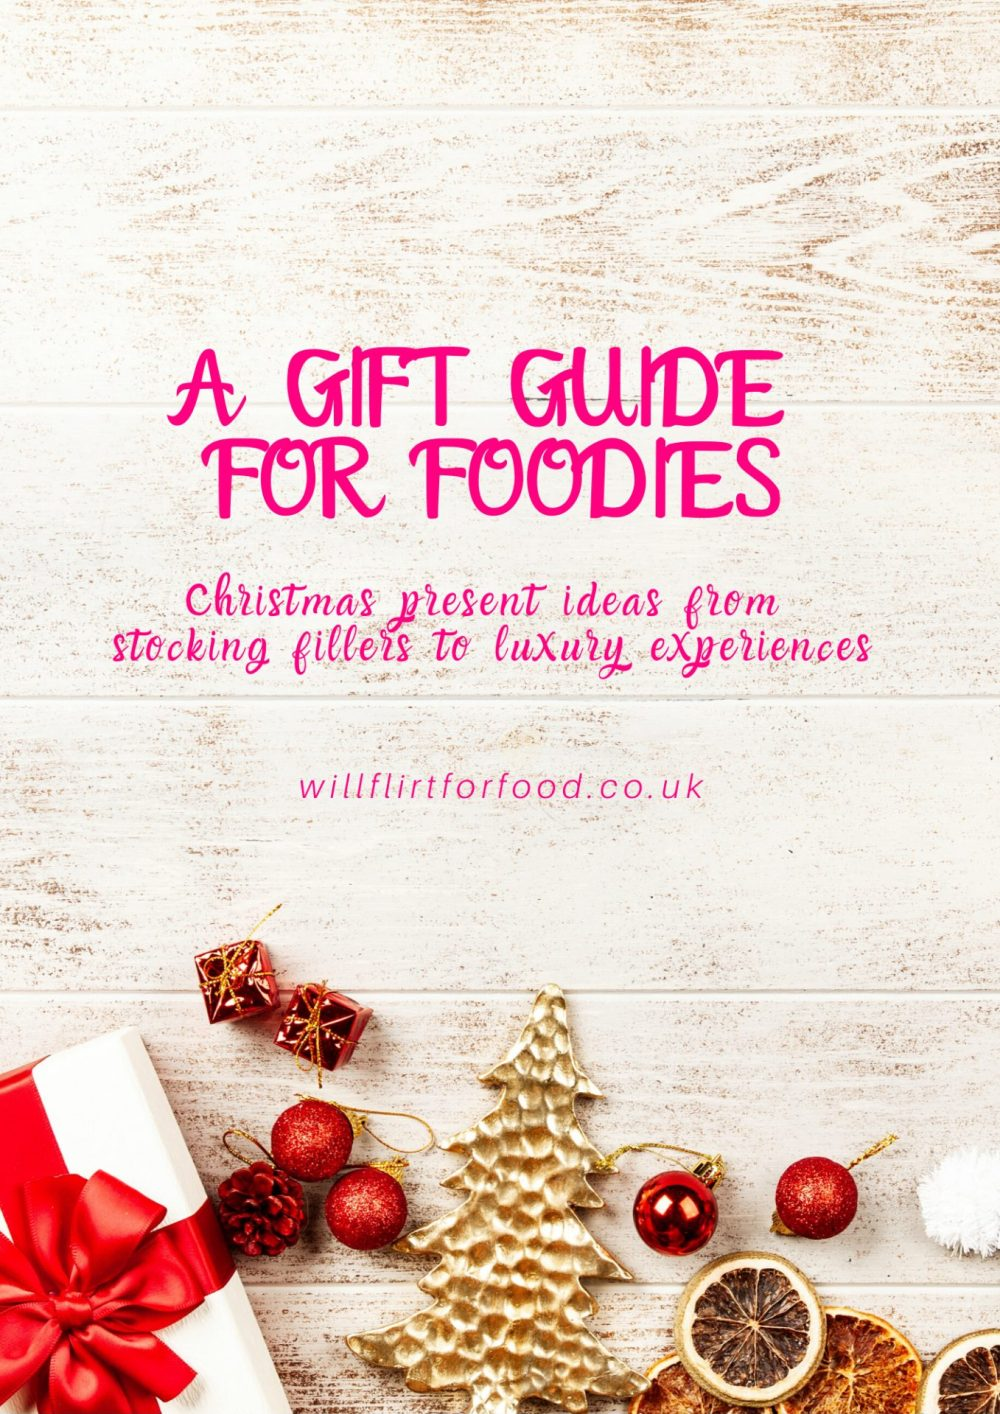 A gift guide for foodies